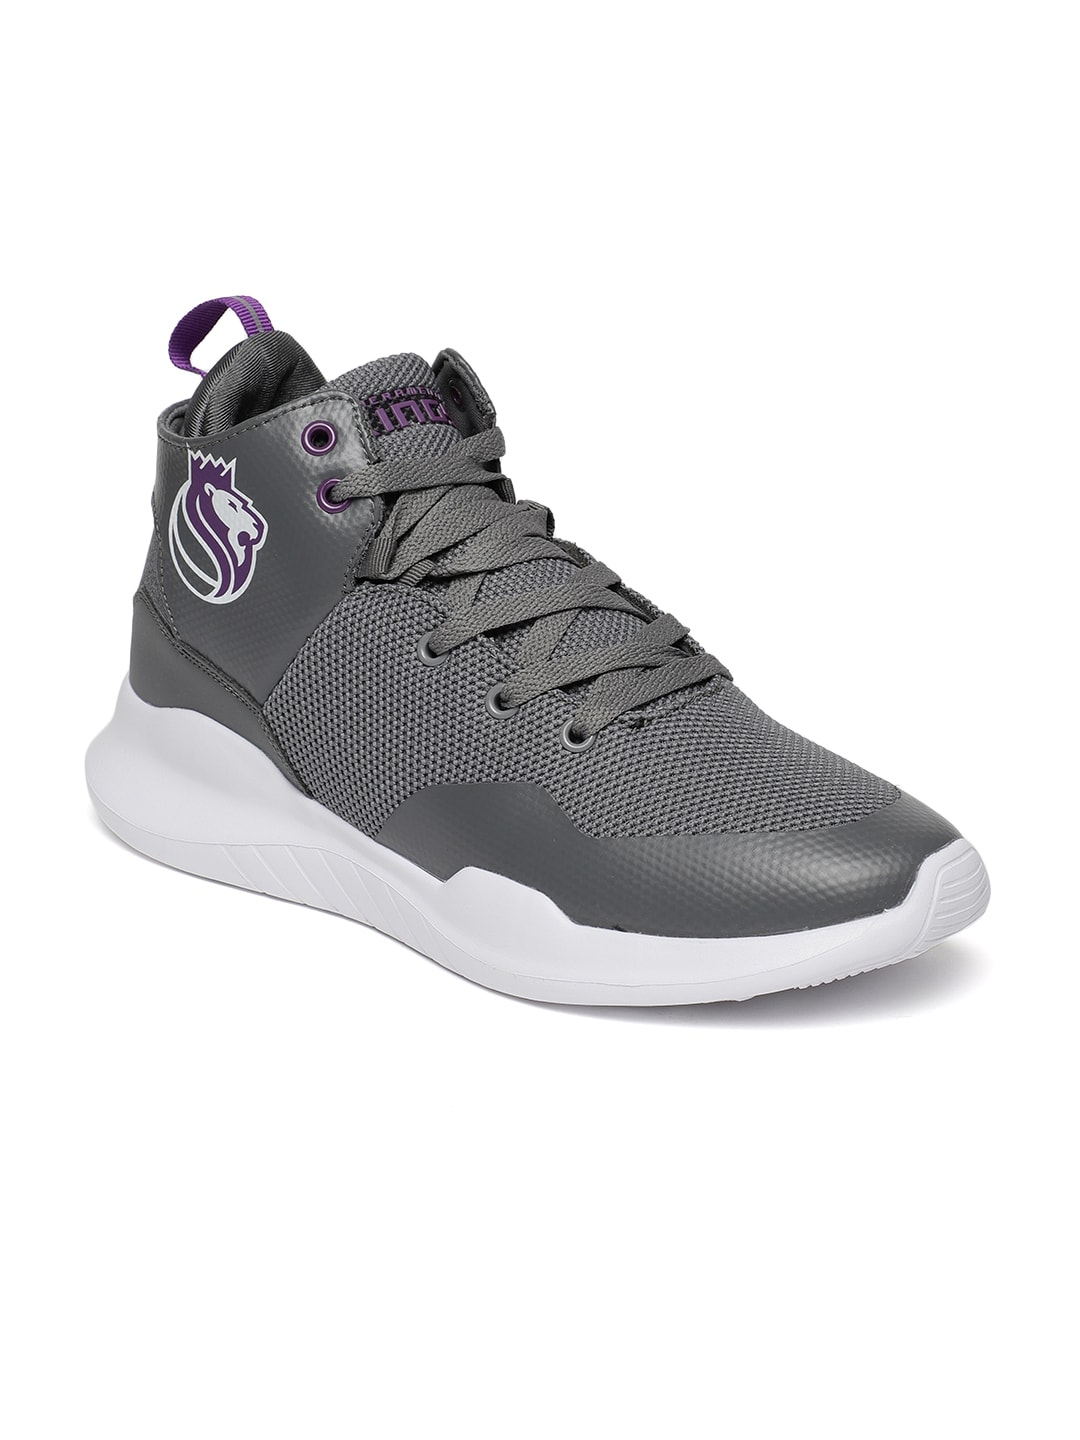 on sale 03cfb 157db Funk Shoes - Buy Funk Shoes online in India